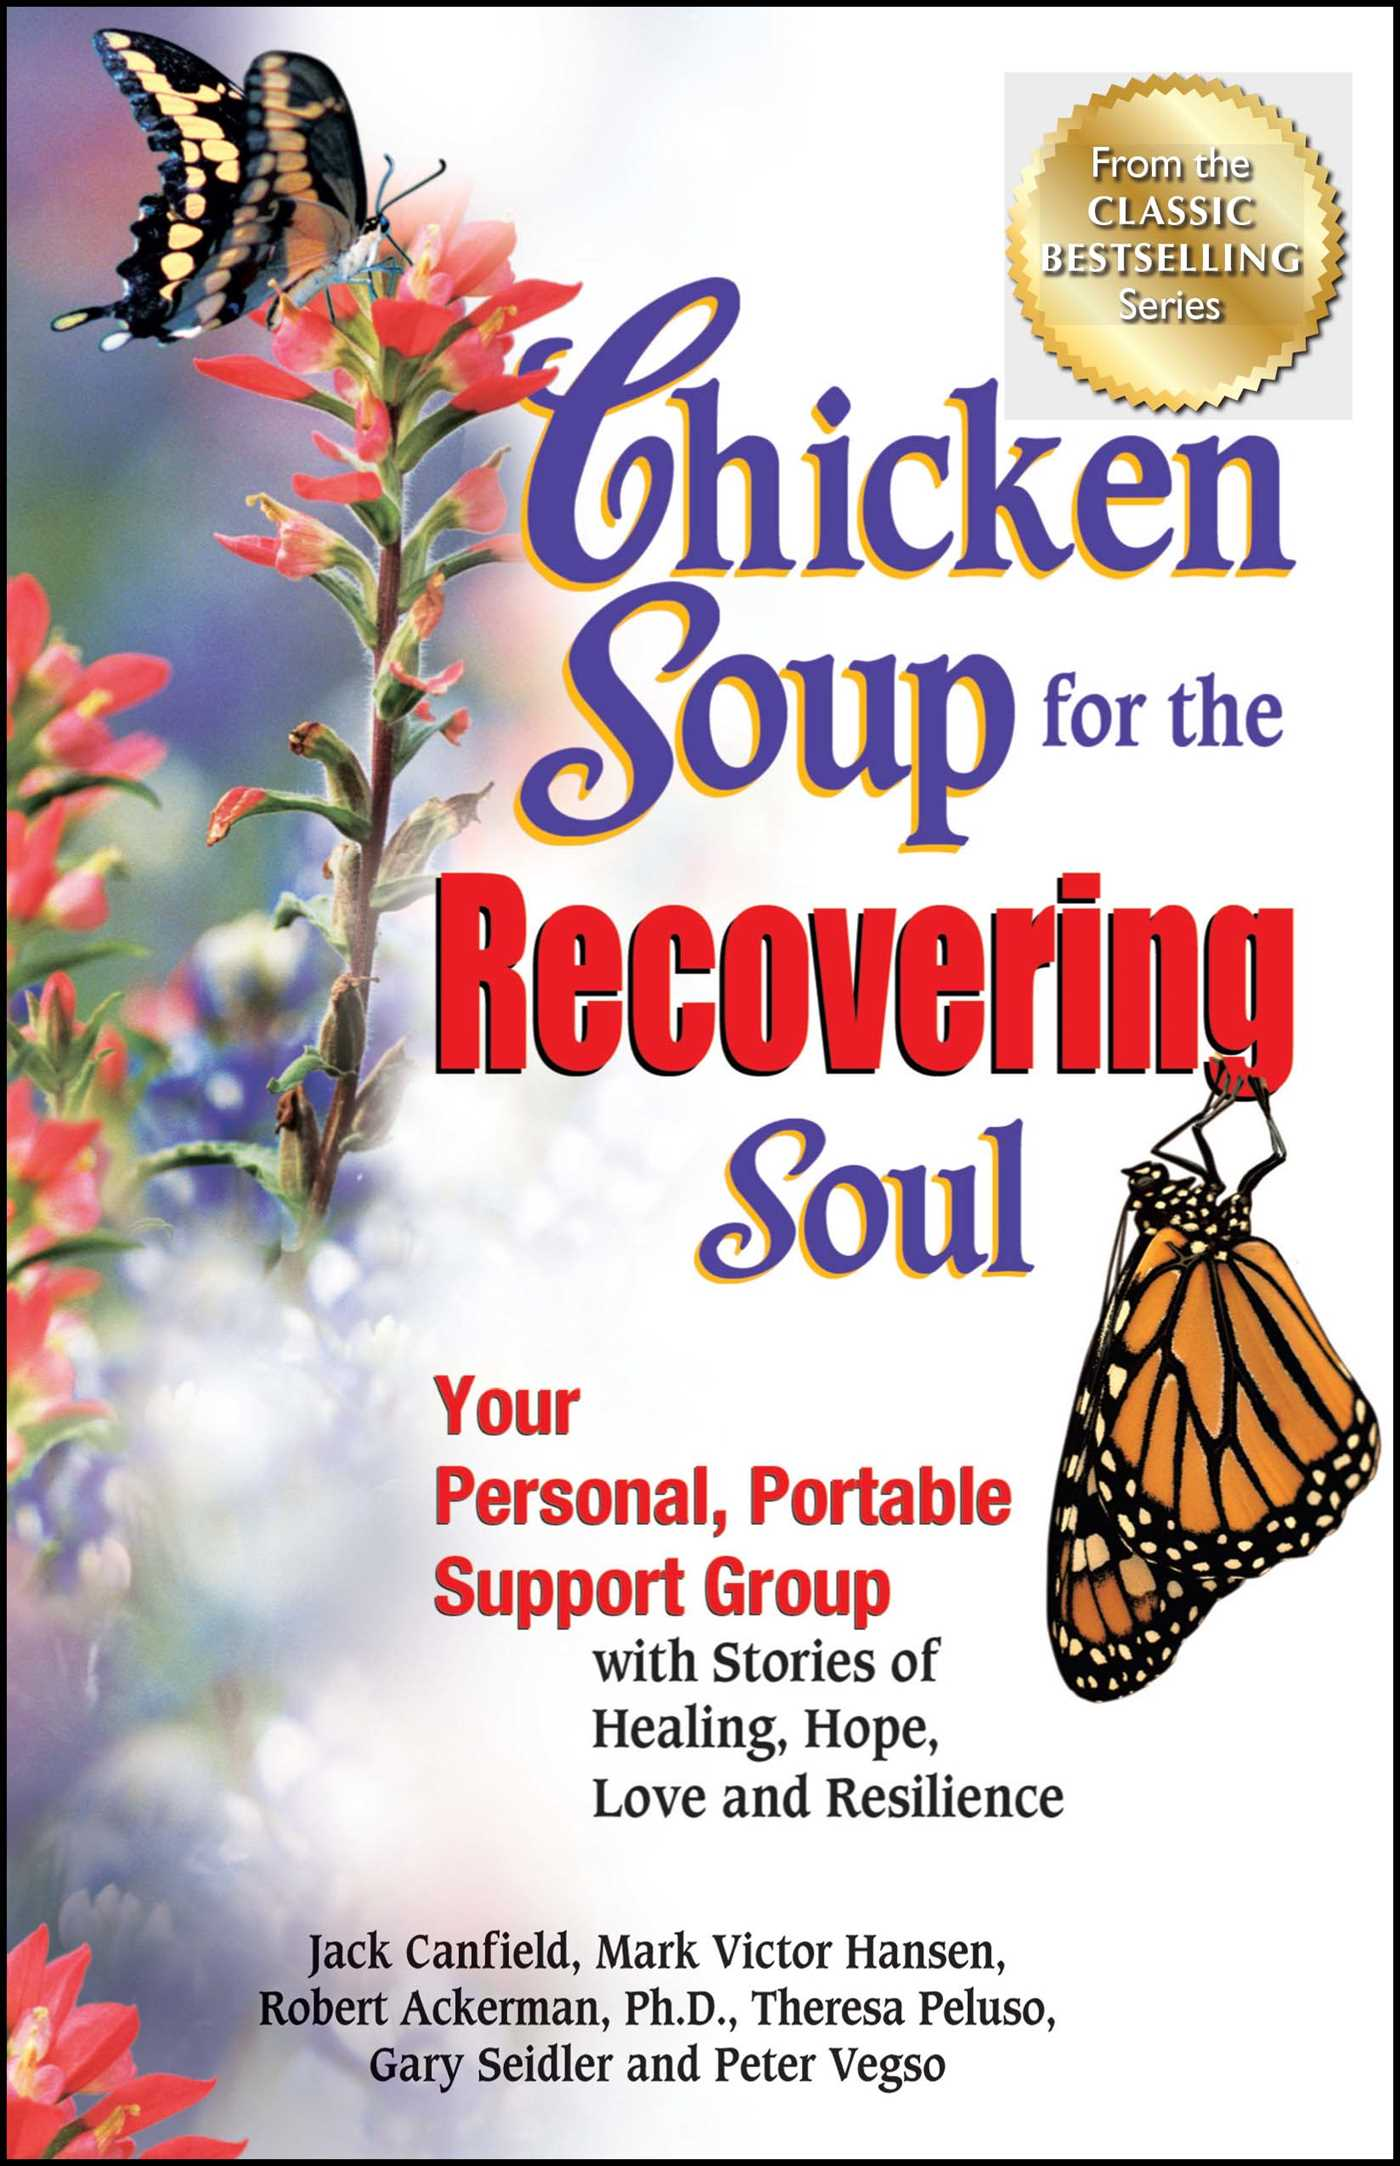 Chicken soup for the recovering soul 9781623610210 hr